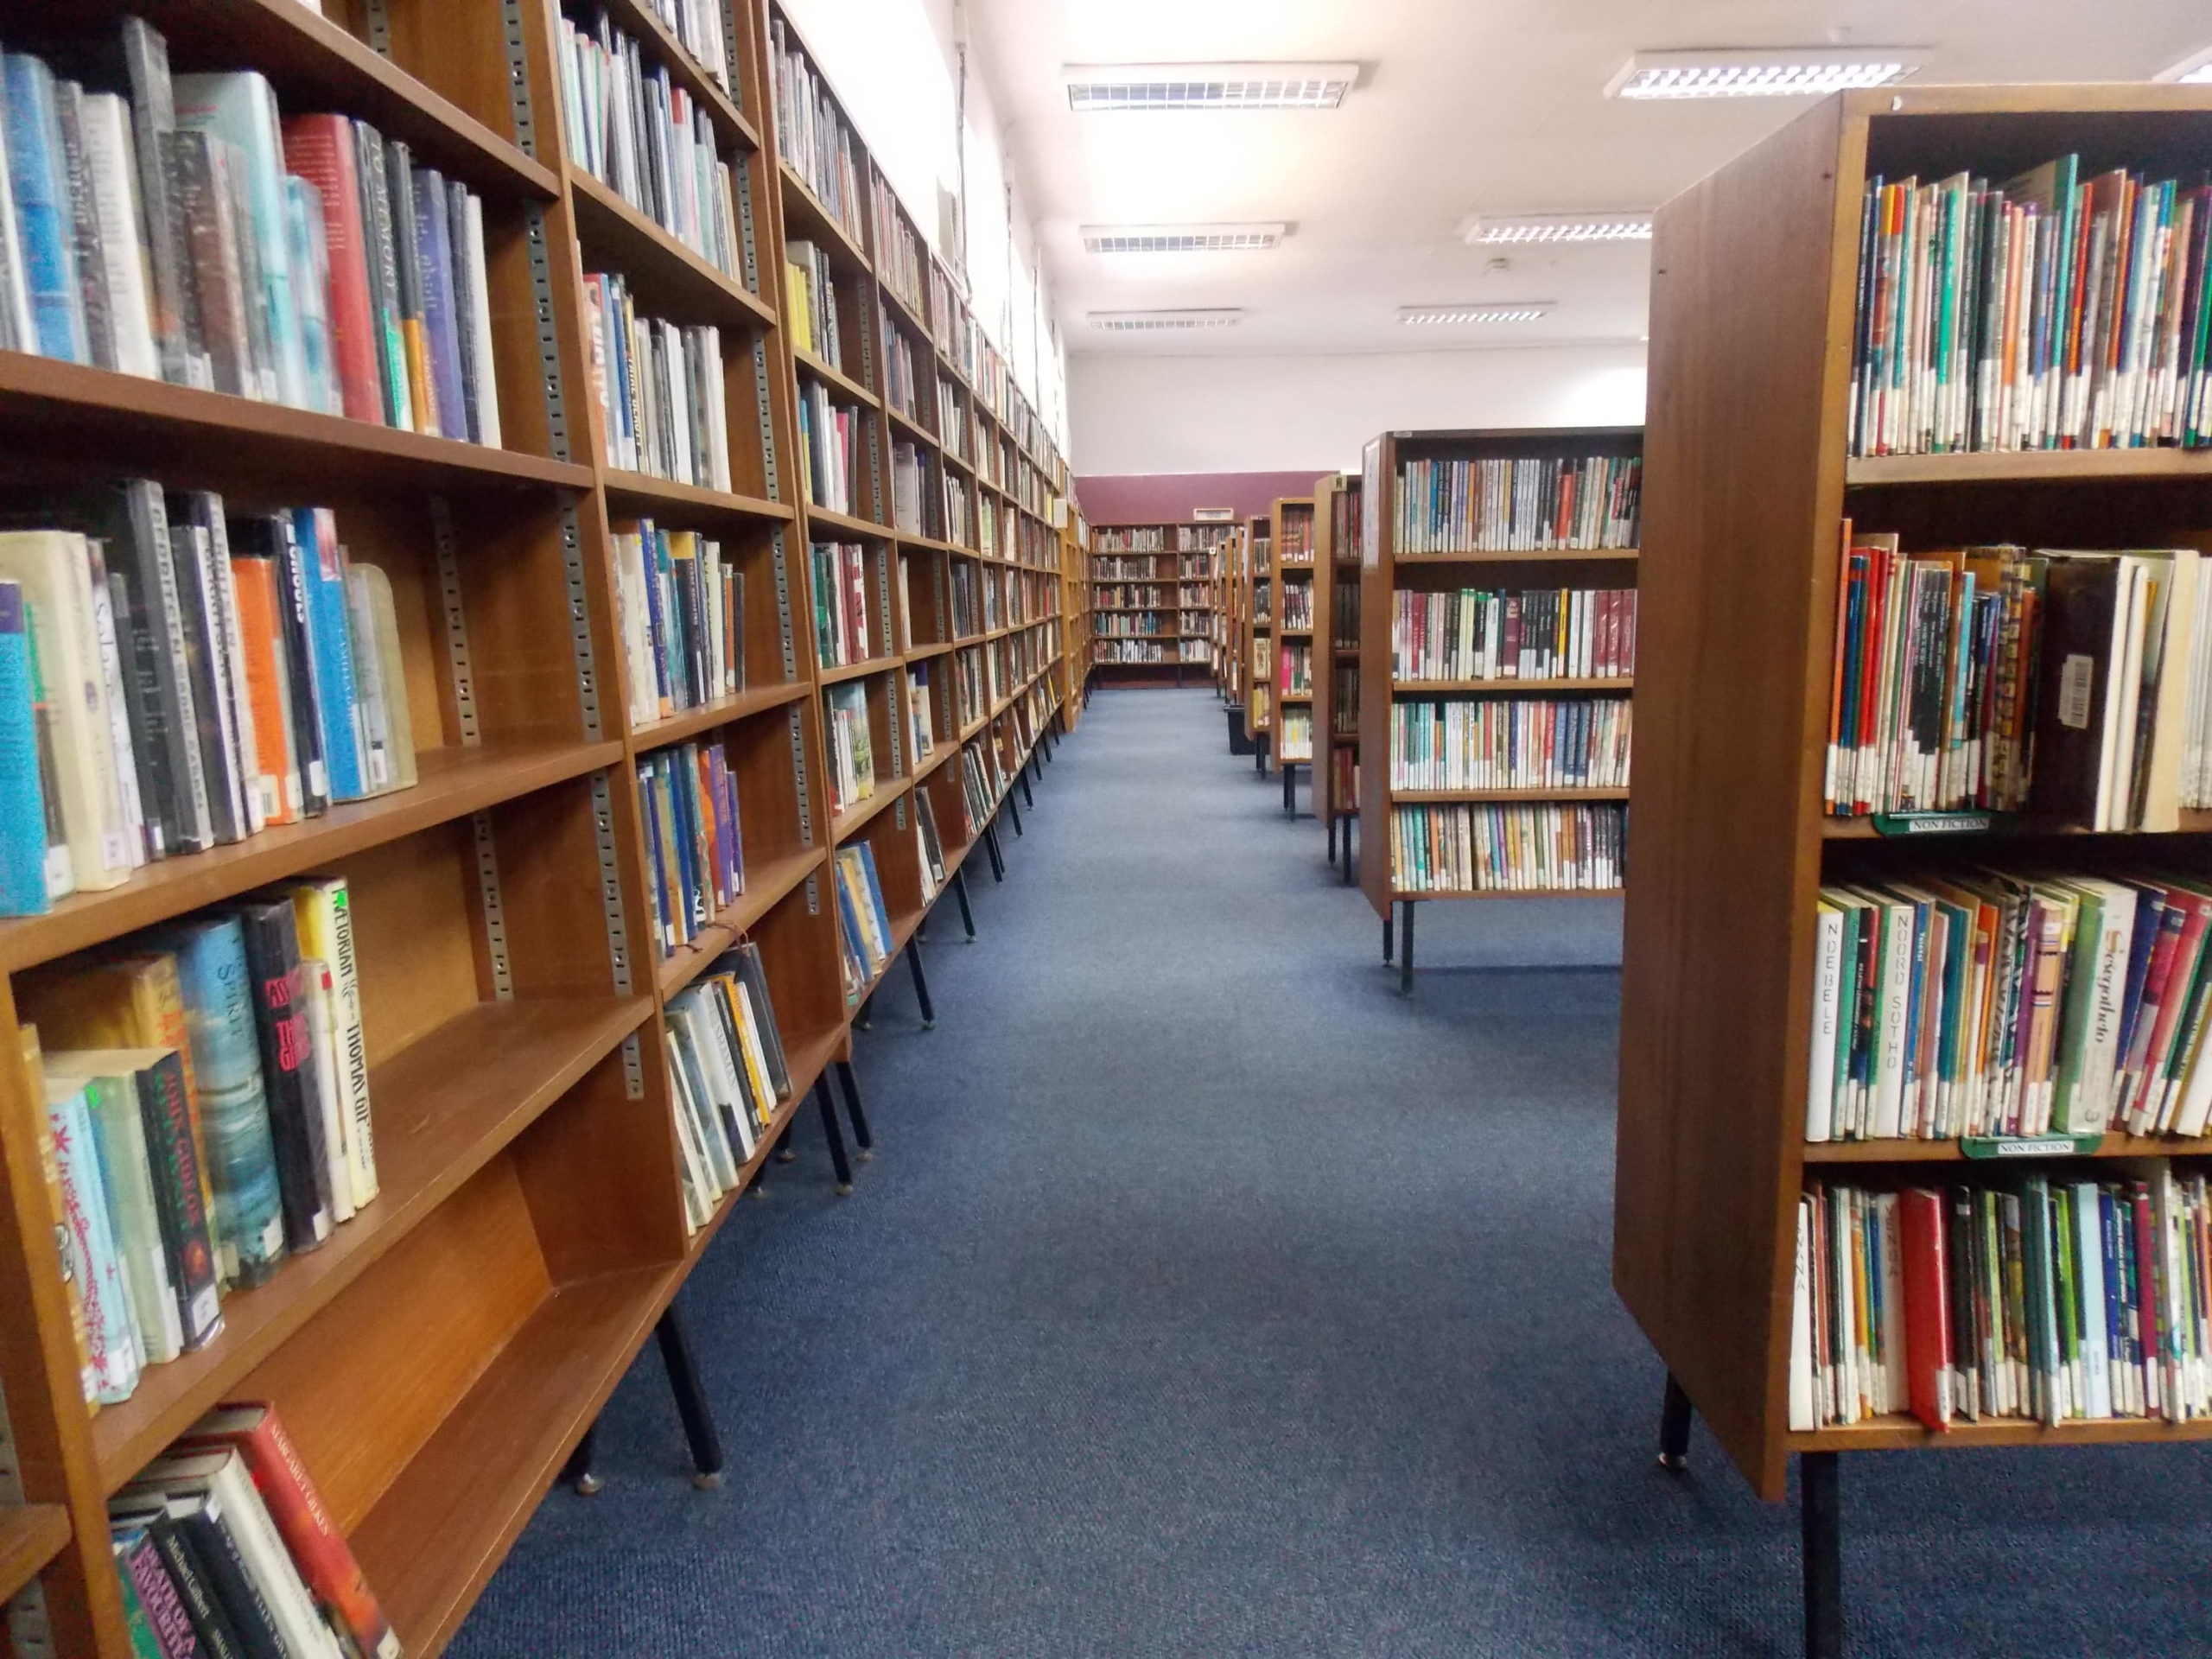 Gauteng Department of Sports, Arts, Culture and Recreation incapable of delivering libraries to the people of Gauteng